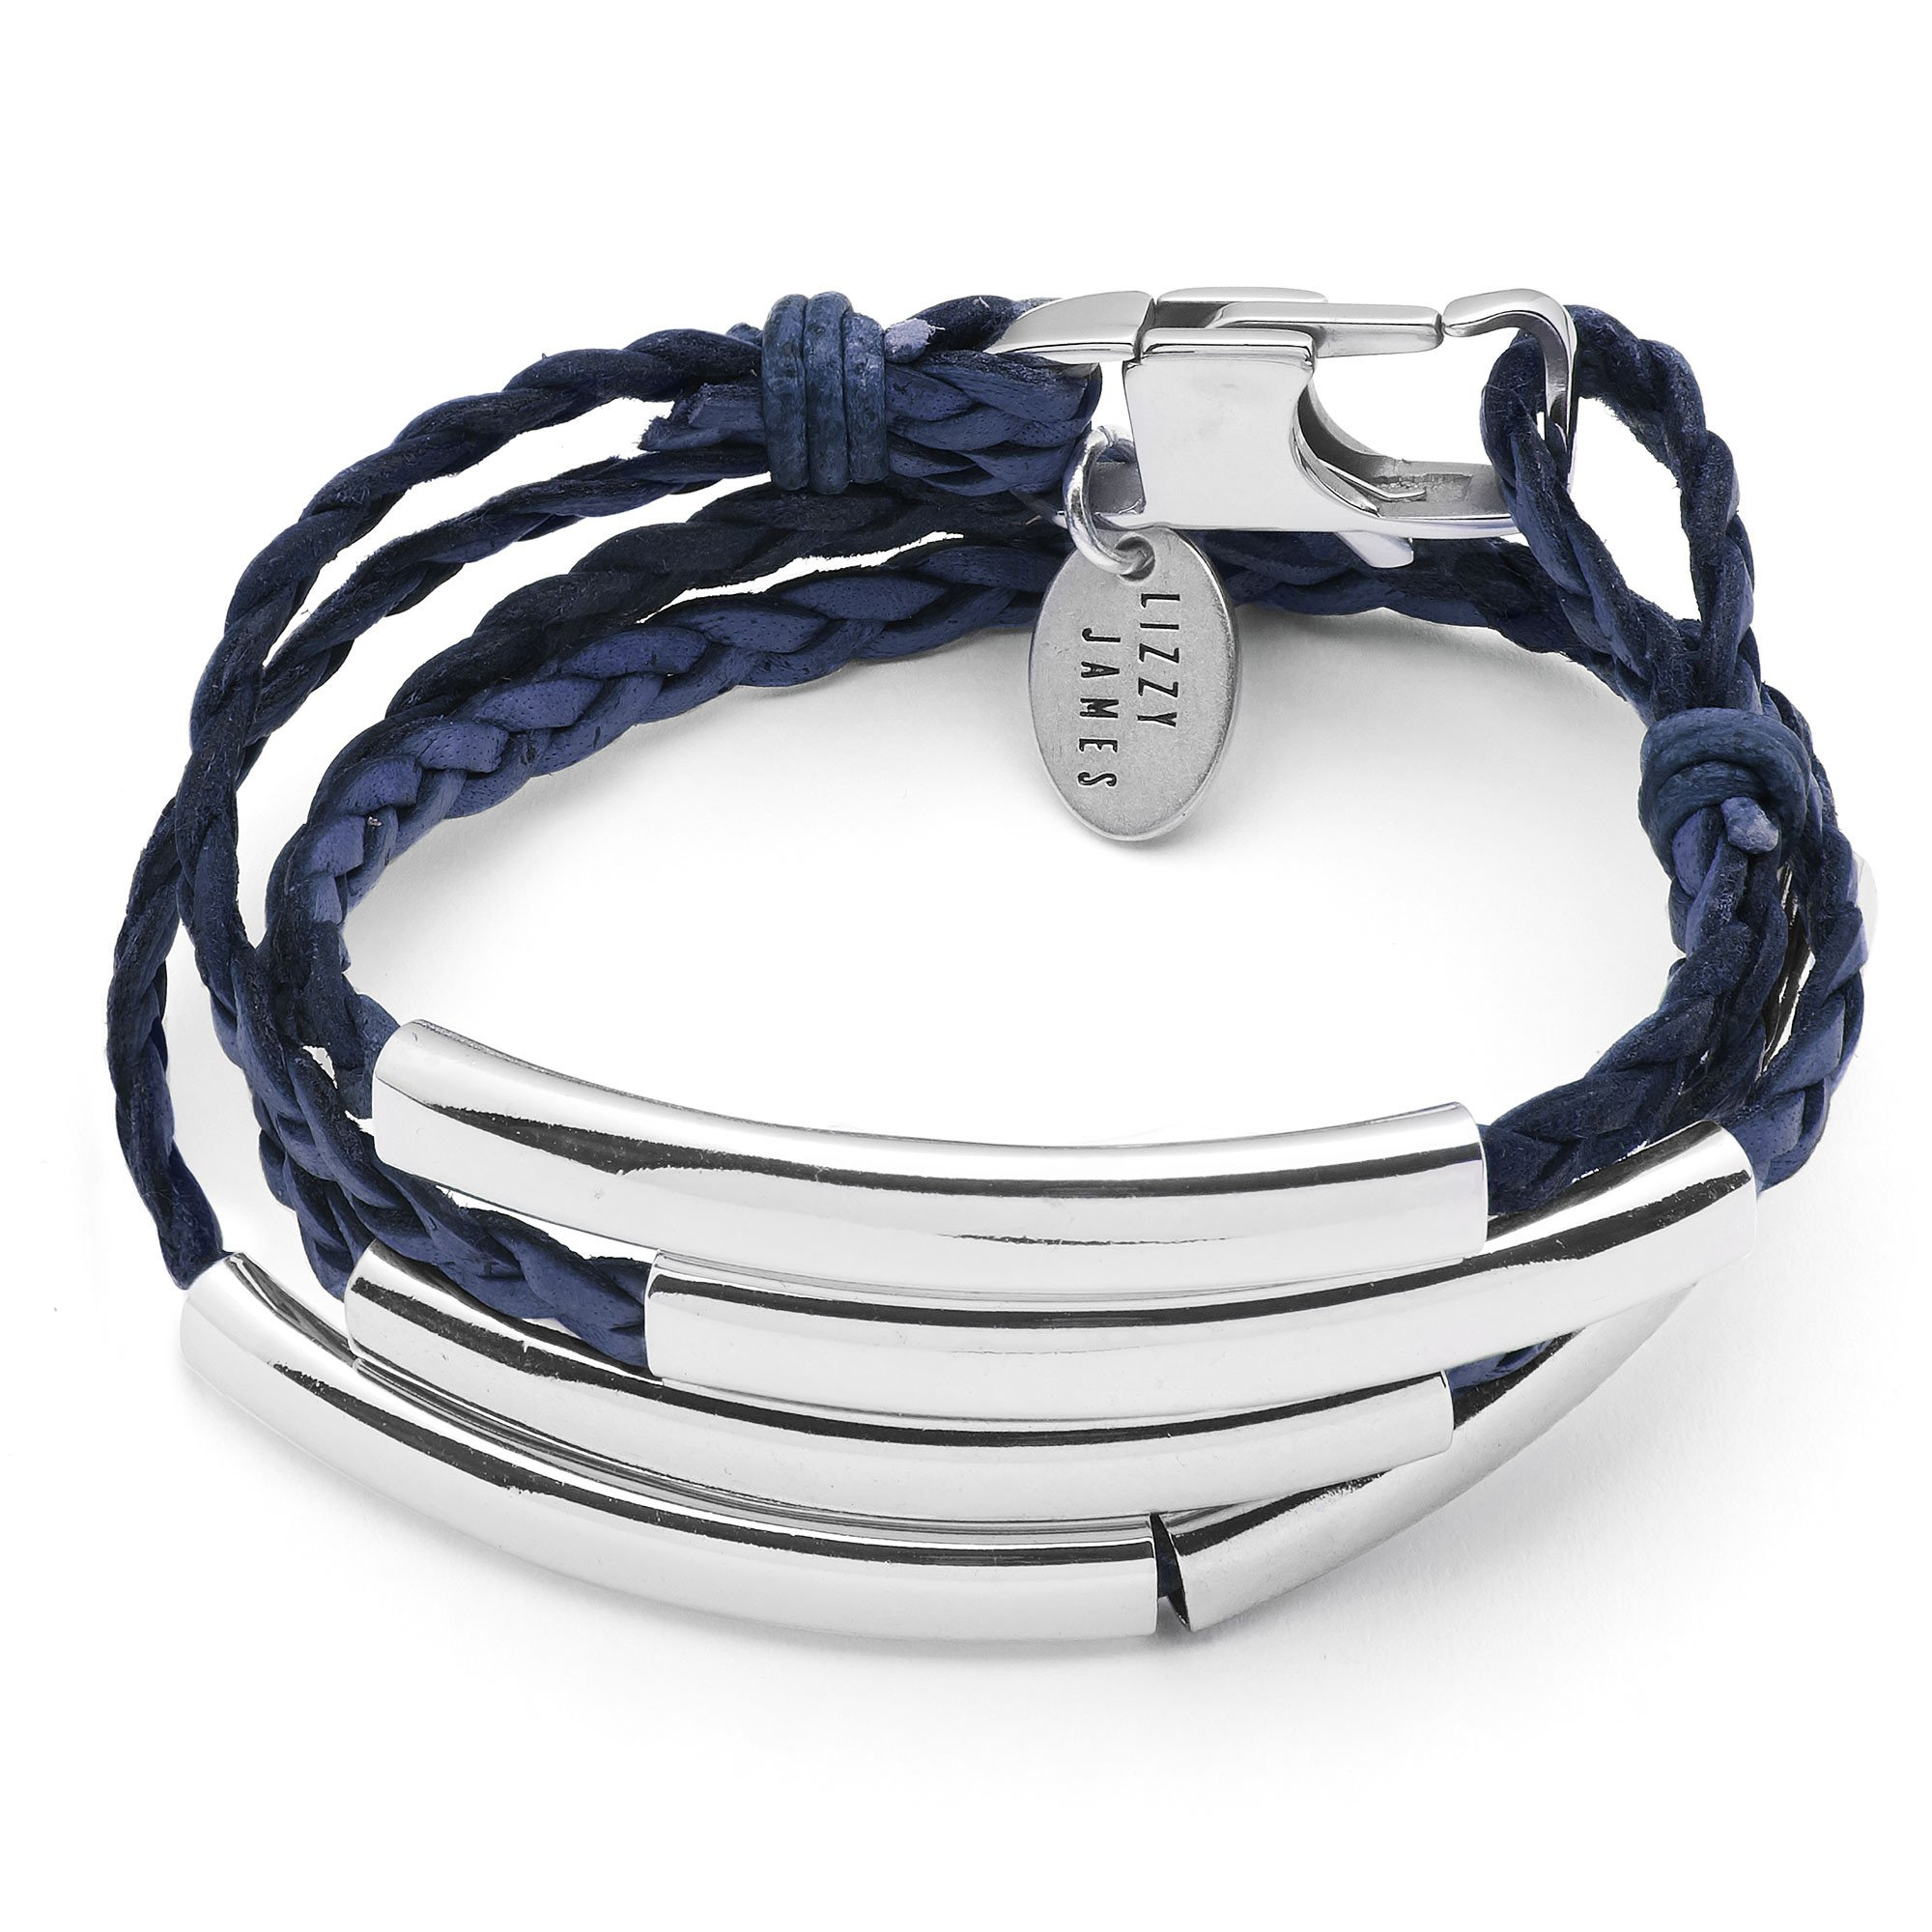 Lizzy James Mini Addison Wrap Bracelet Silverplate in Natural Pacific Dark Blue Braided Leather (Medium)